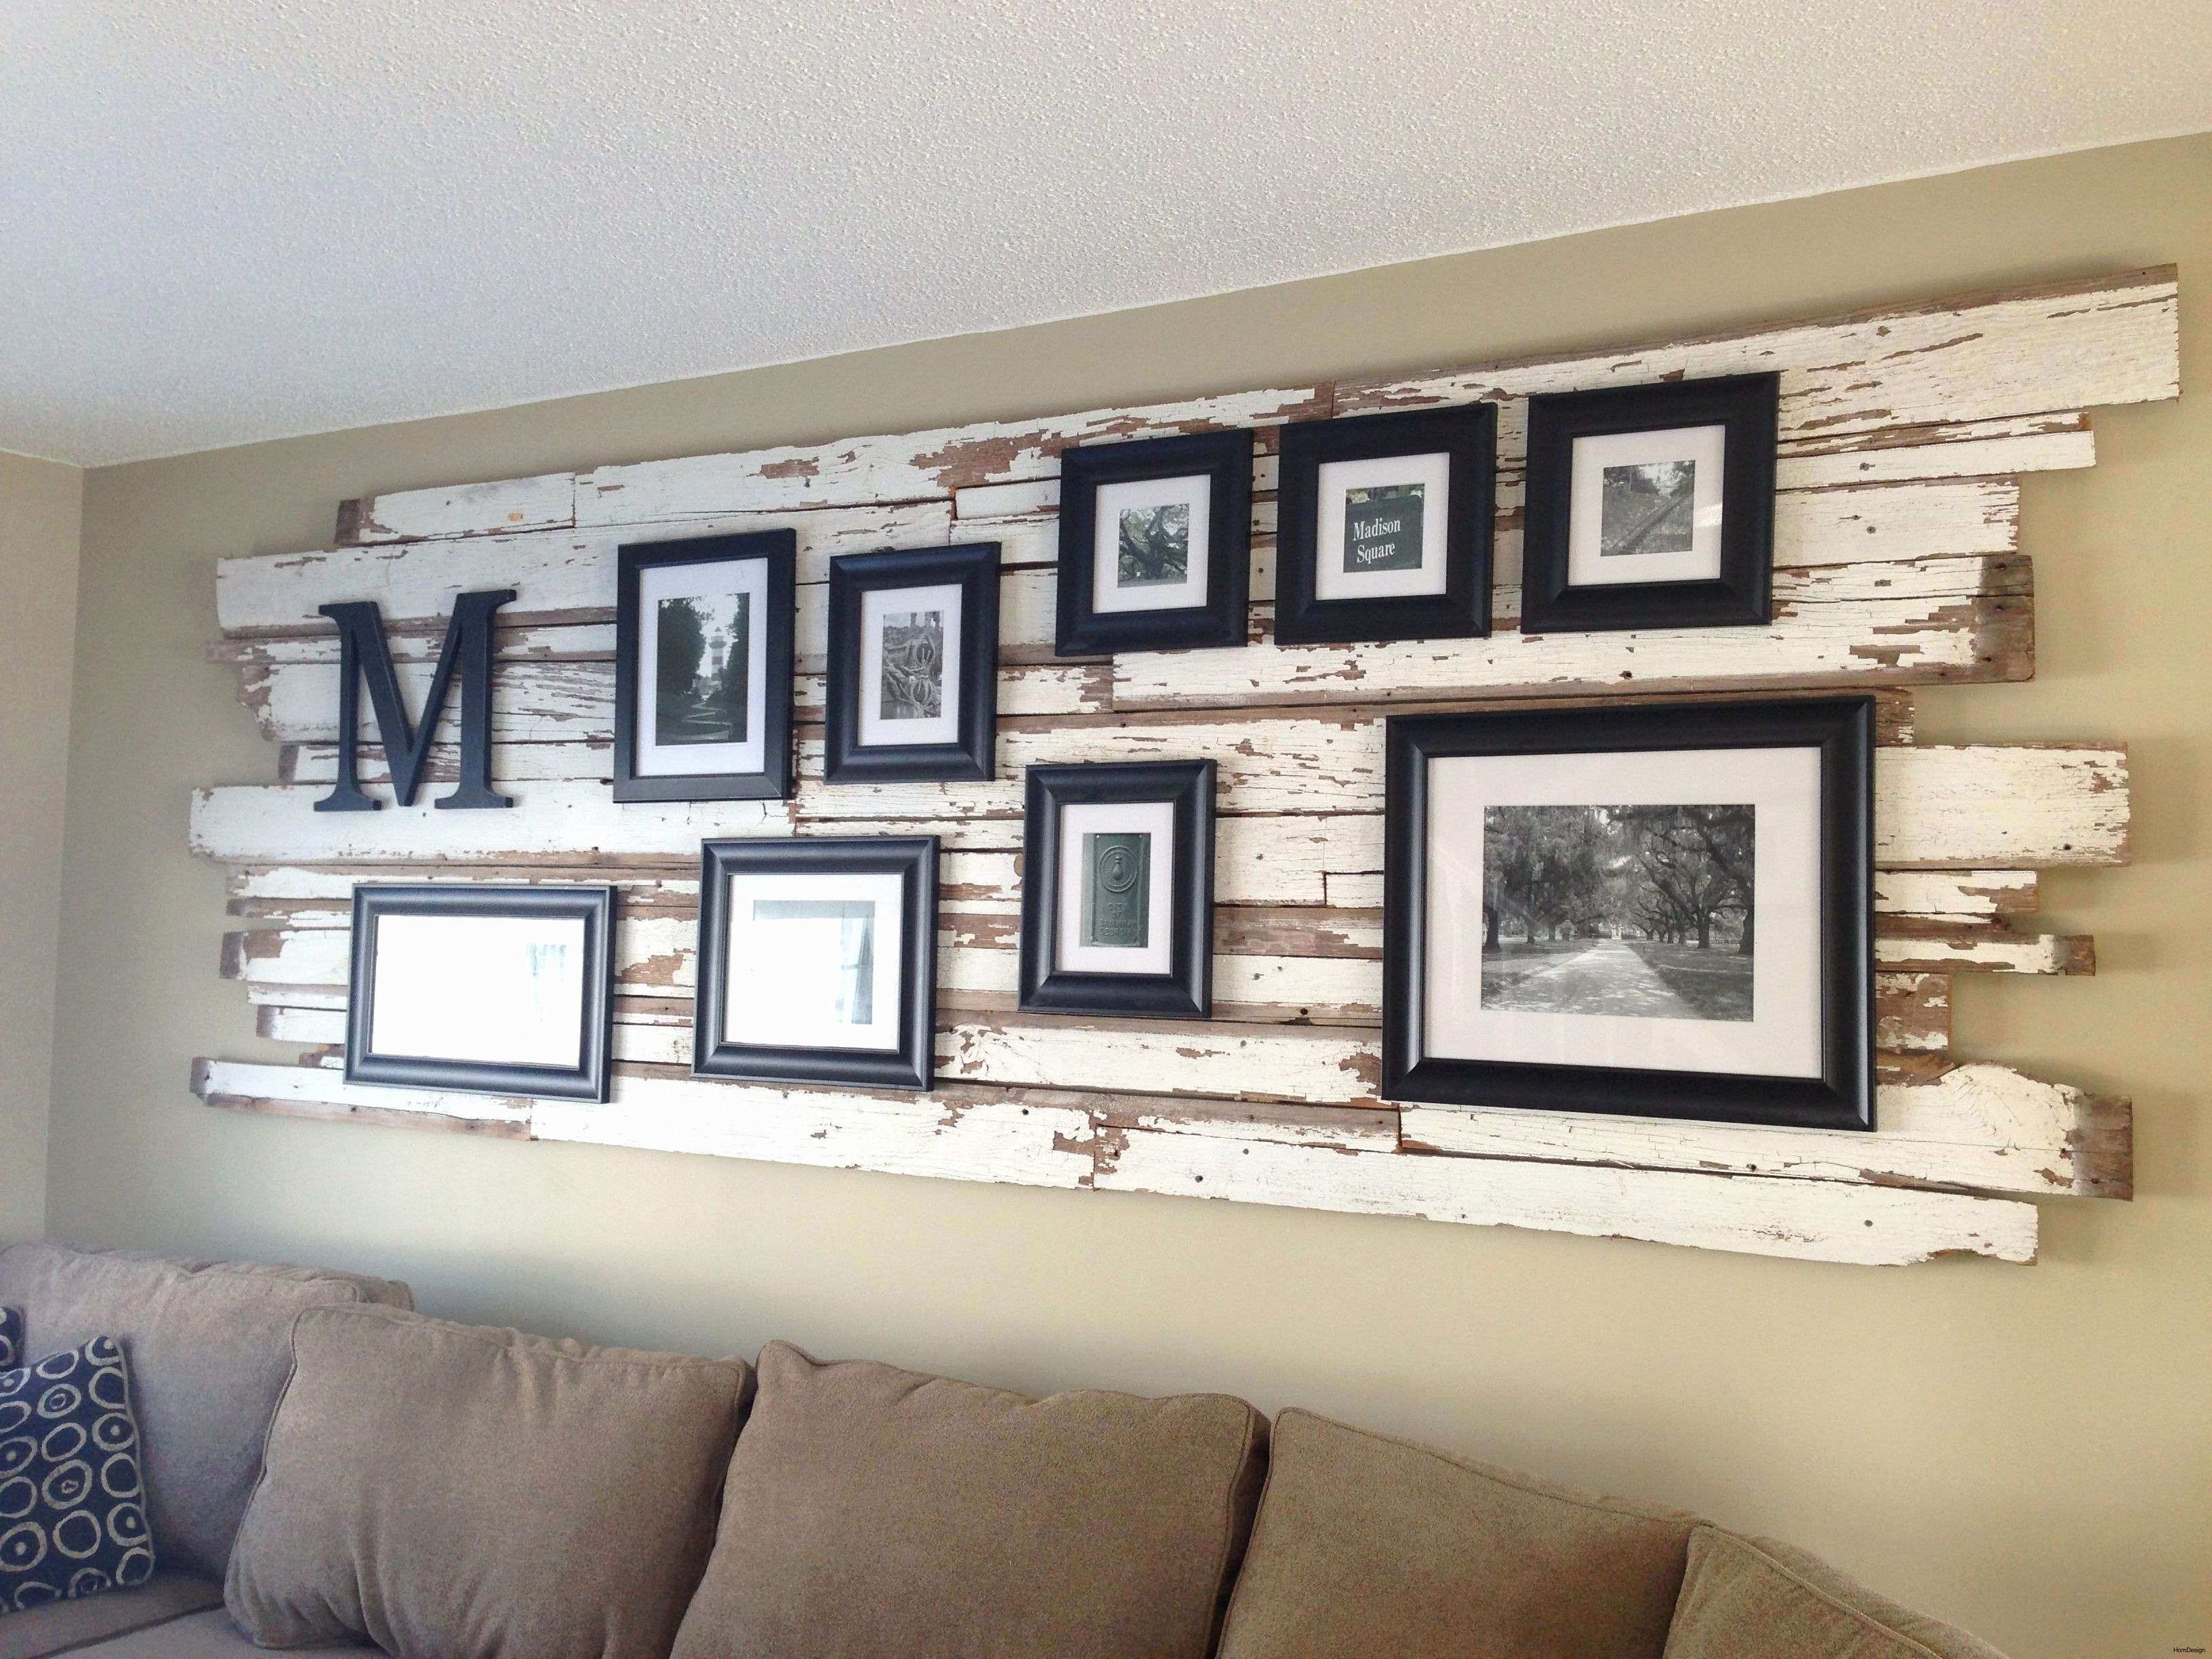 48 New Wall Decor Ideas for Living Room